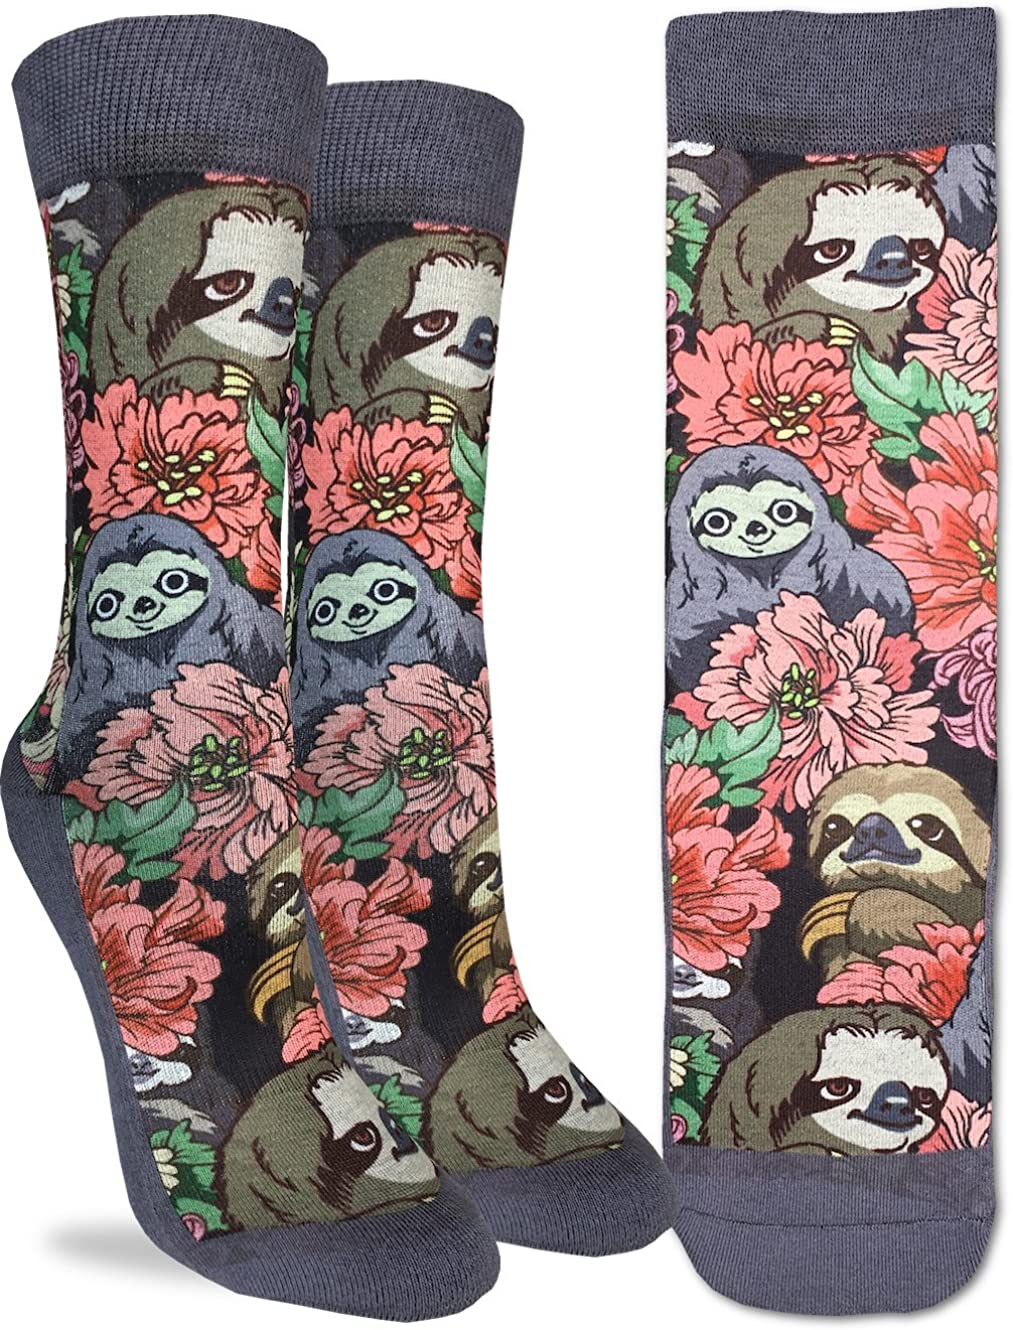 Good Luck Sock Womens Floral Sloths Crew Socks - Grey, Adult Shoe Size 5-9